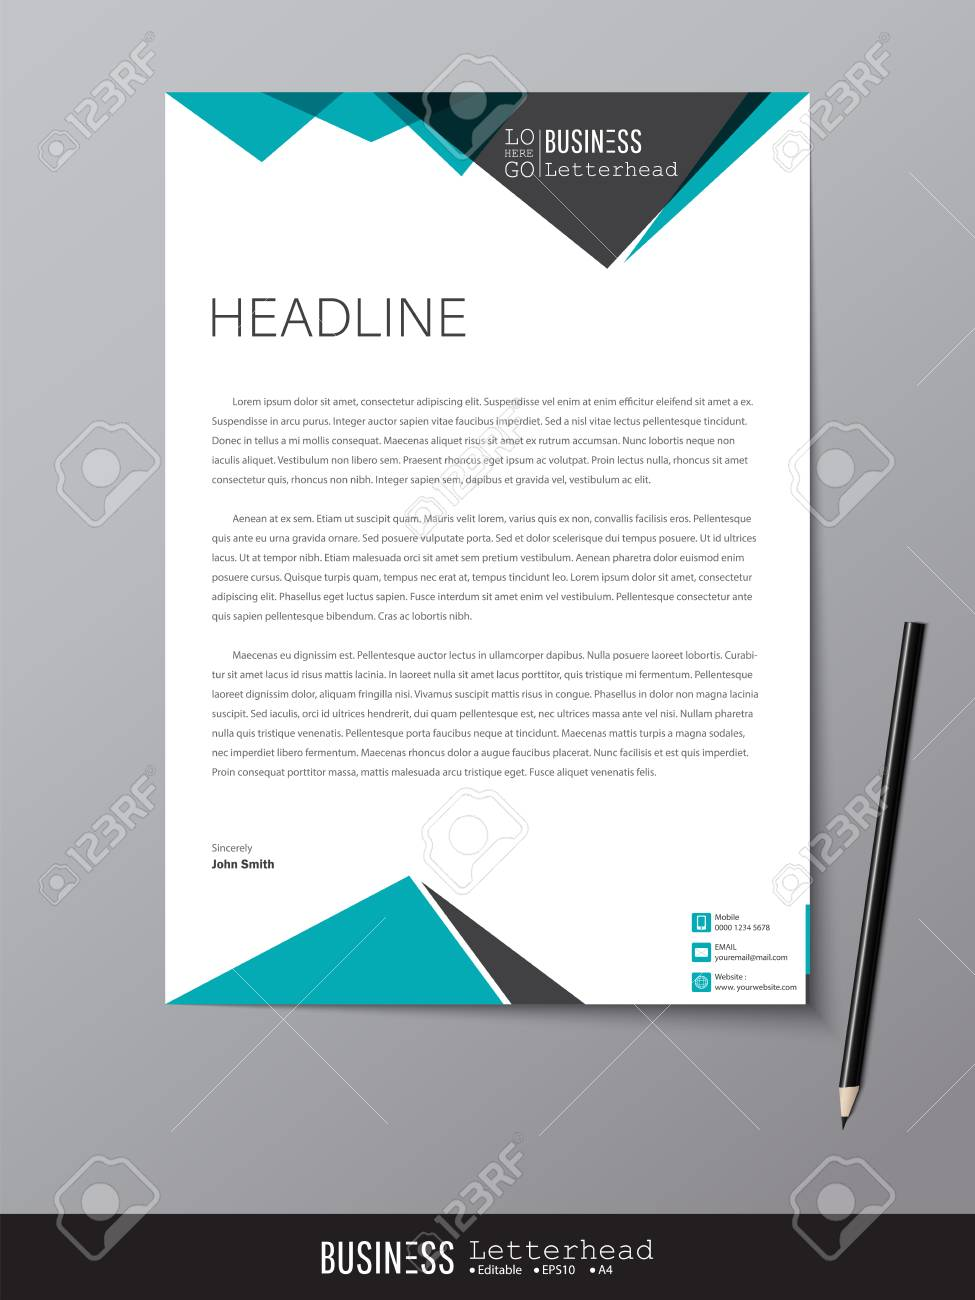 Letterhead design template and mockup minimalist style vector letterhead design template and mockup minimalist style vector design for business or letter layout accmission